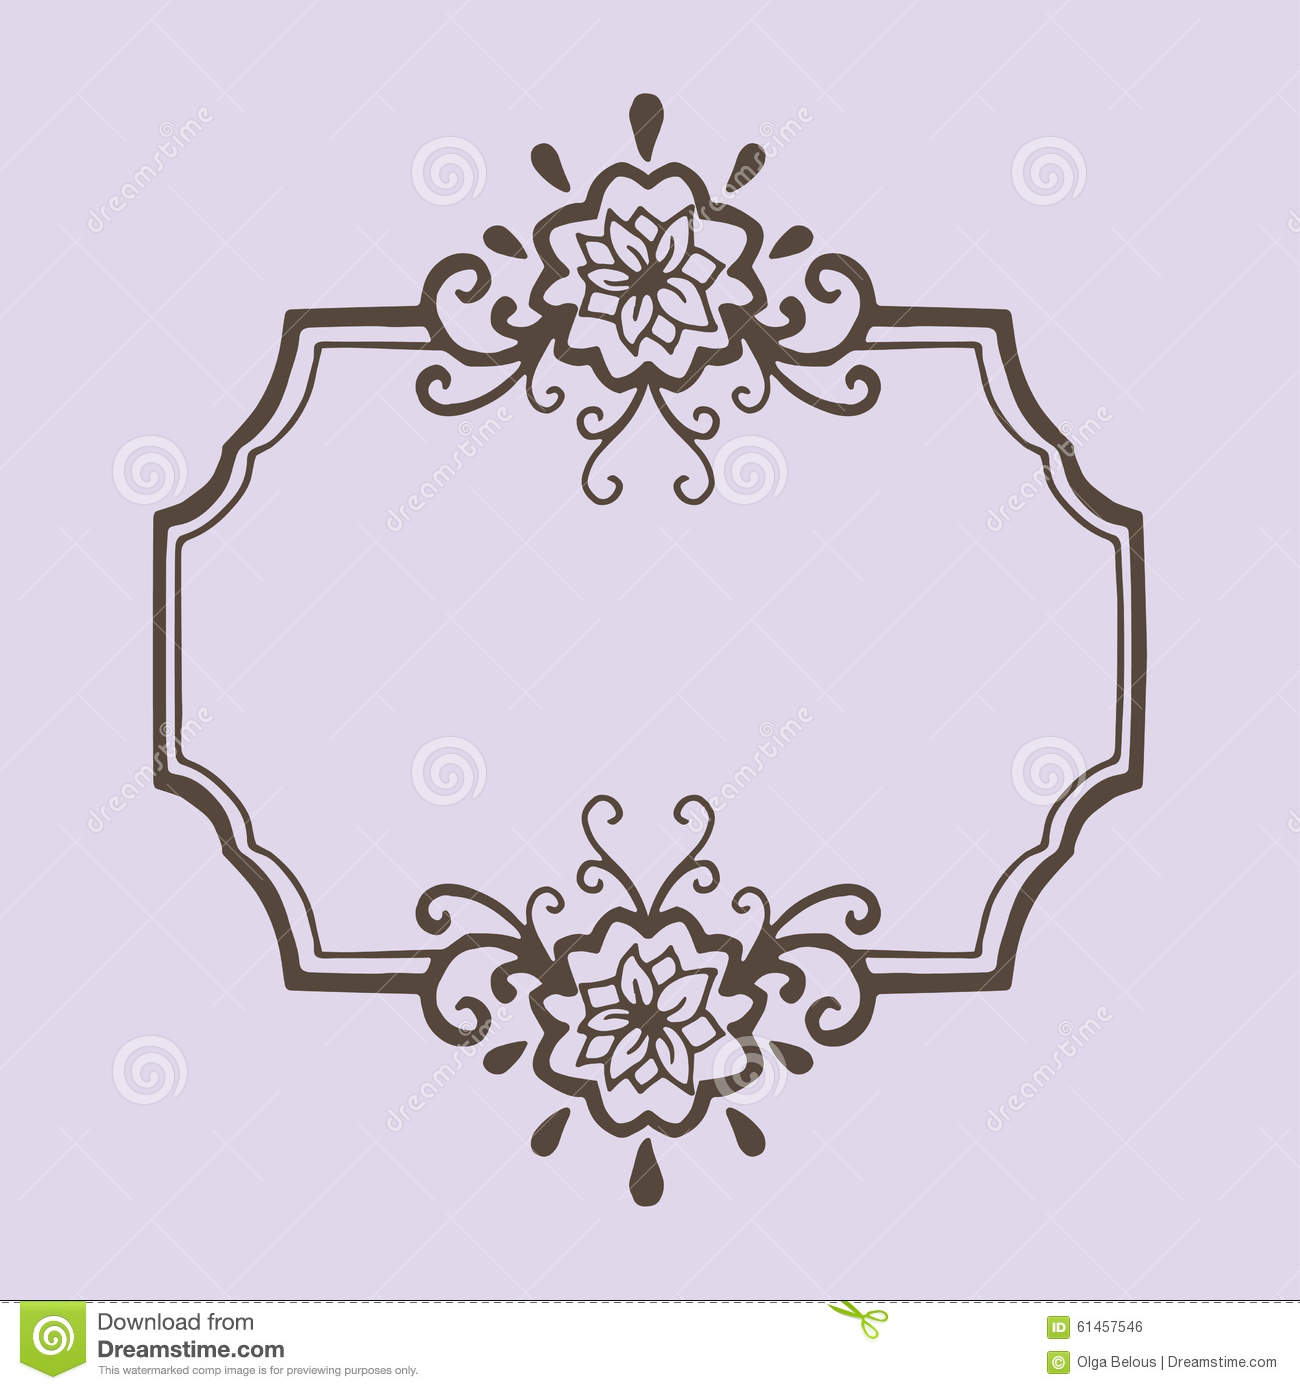 Calligraphic vintage frame with flowers stock vector